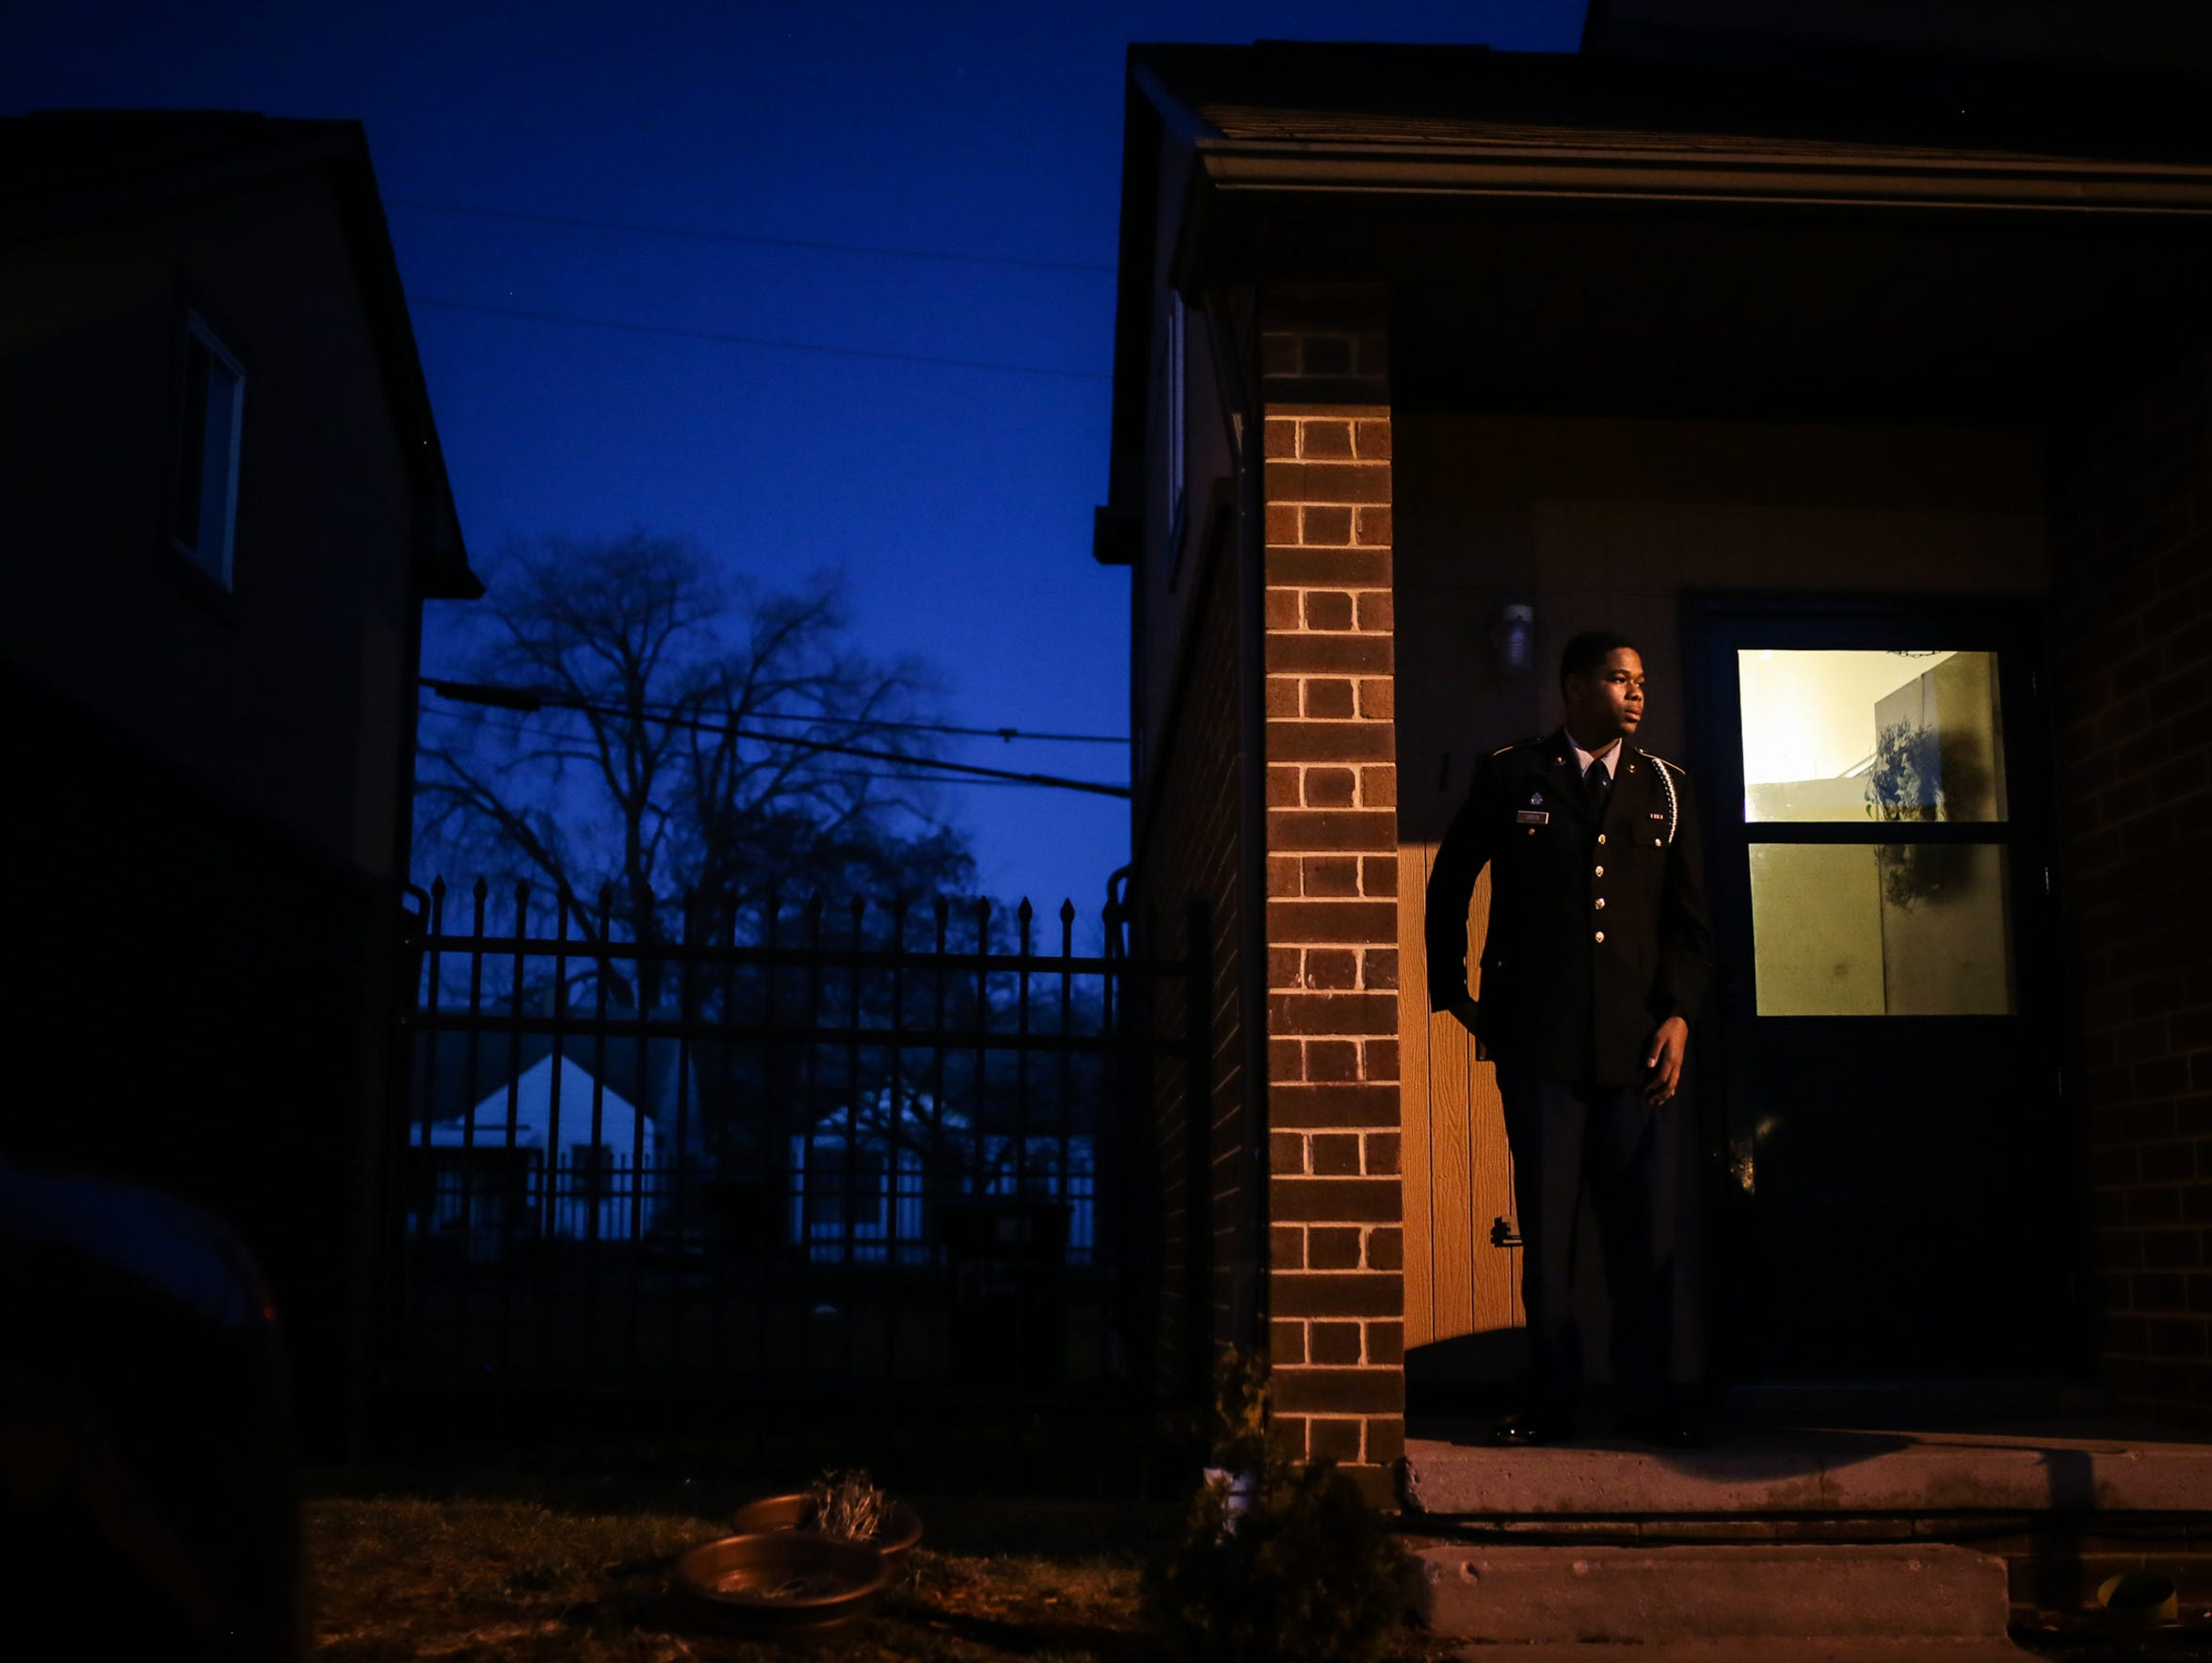 Myles Green, 15, stands on his porch in the darkness